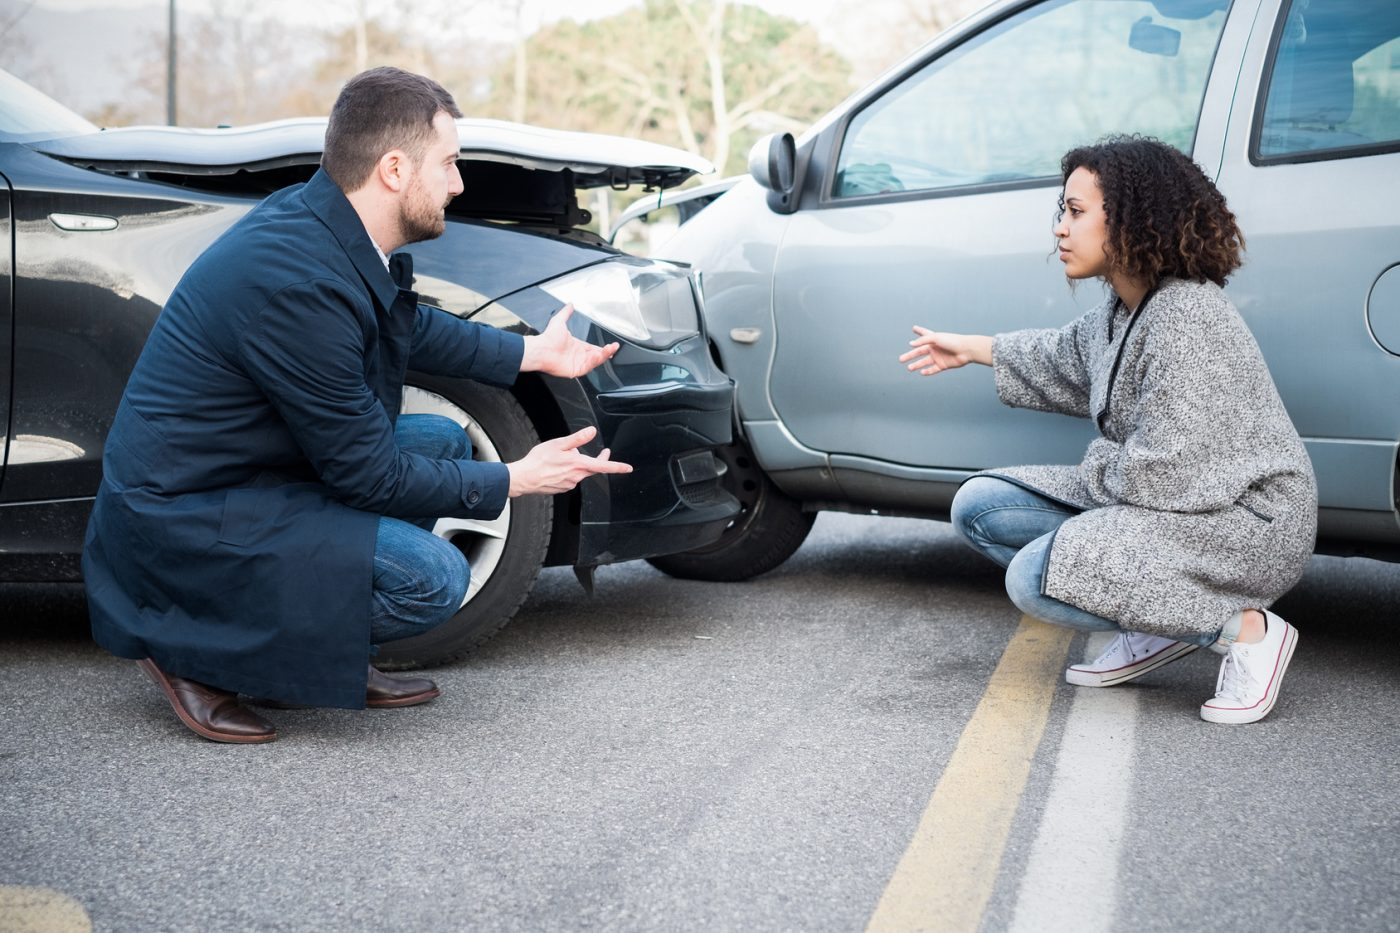 Man and woman arguing about damage after bad car crash